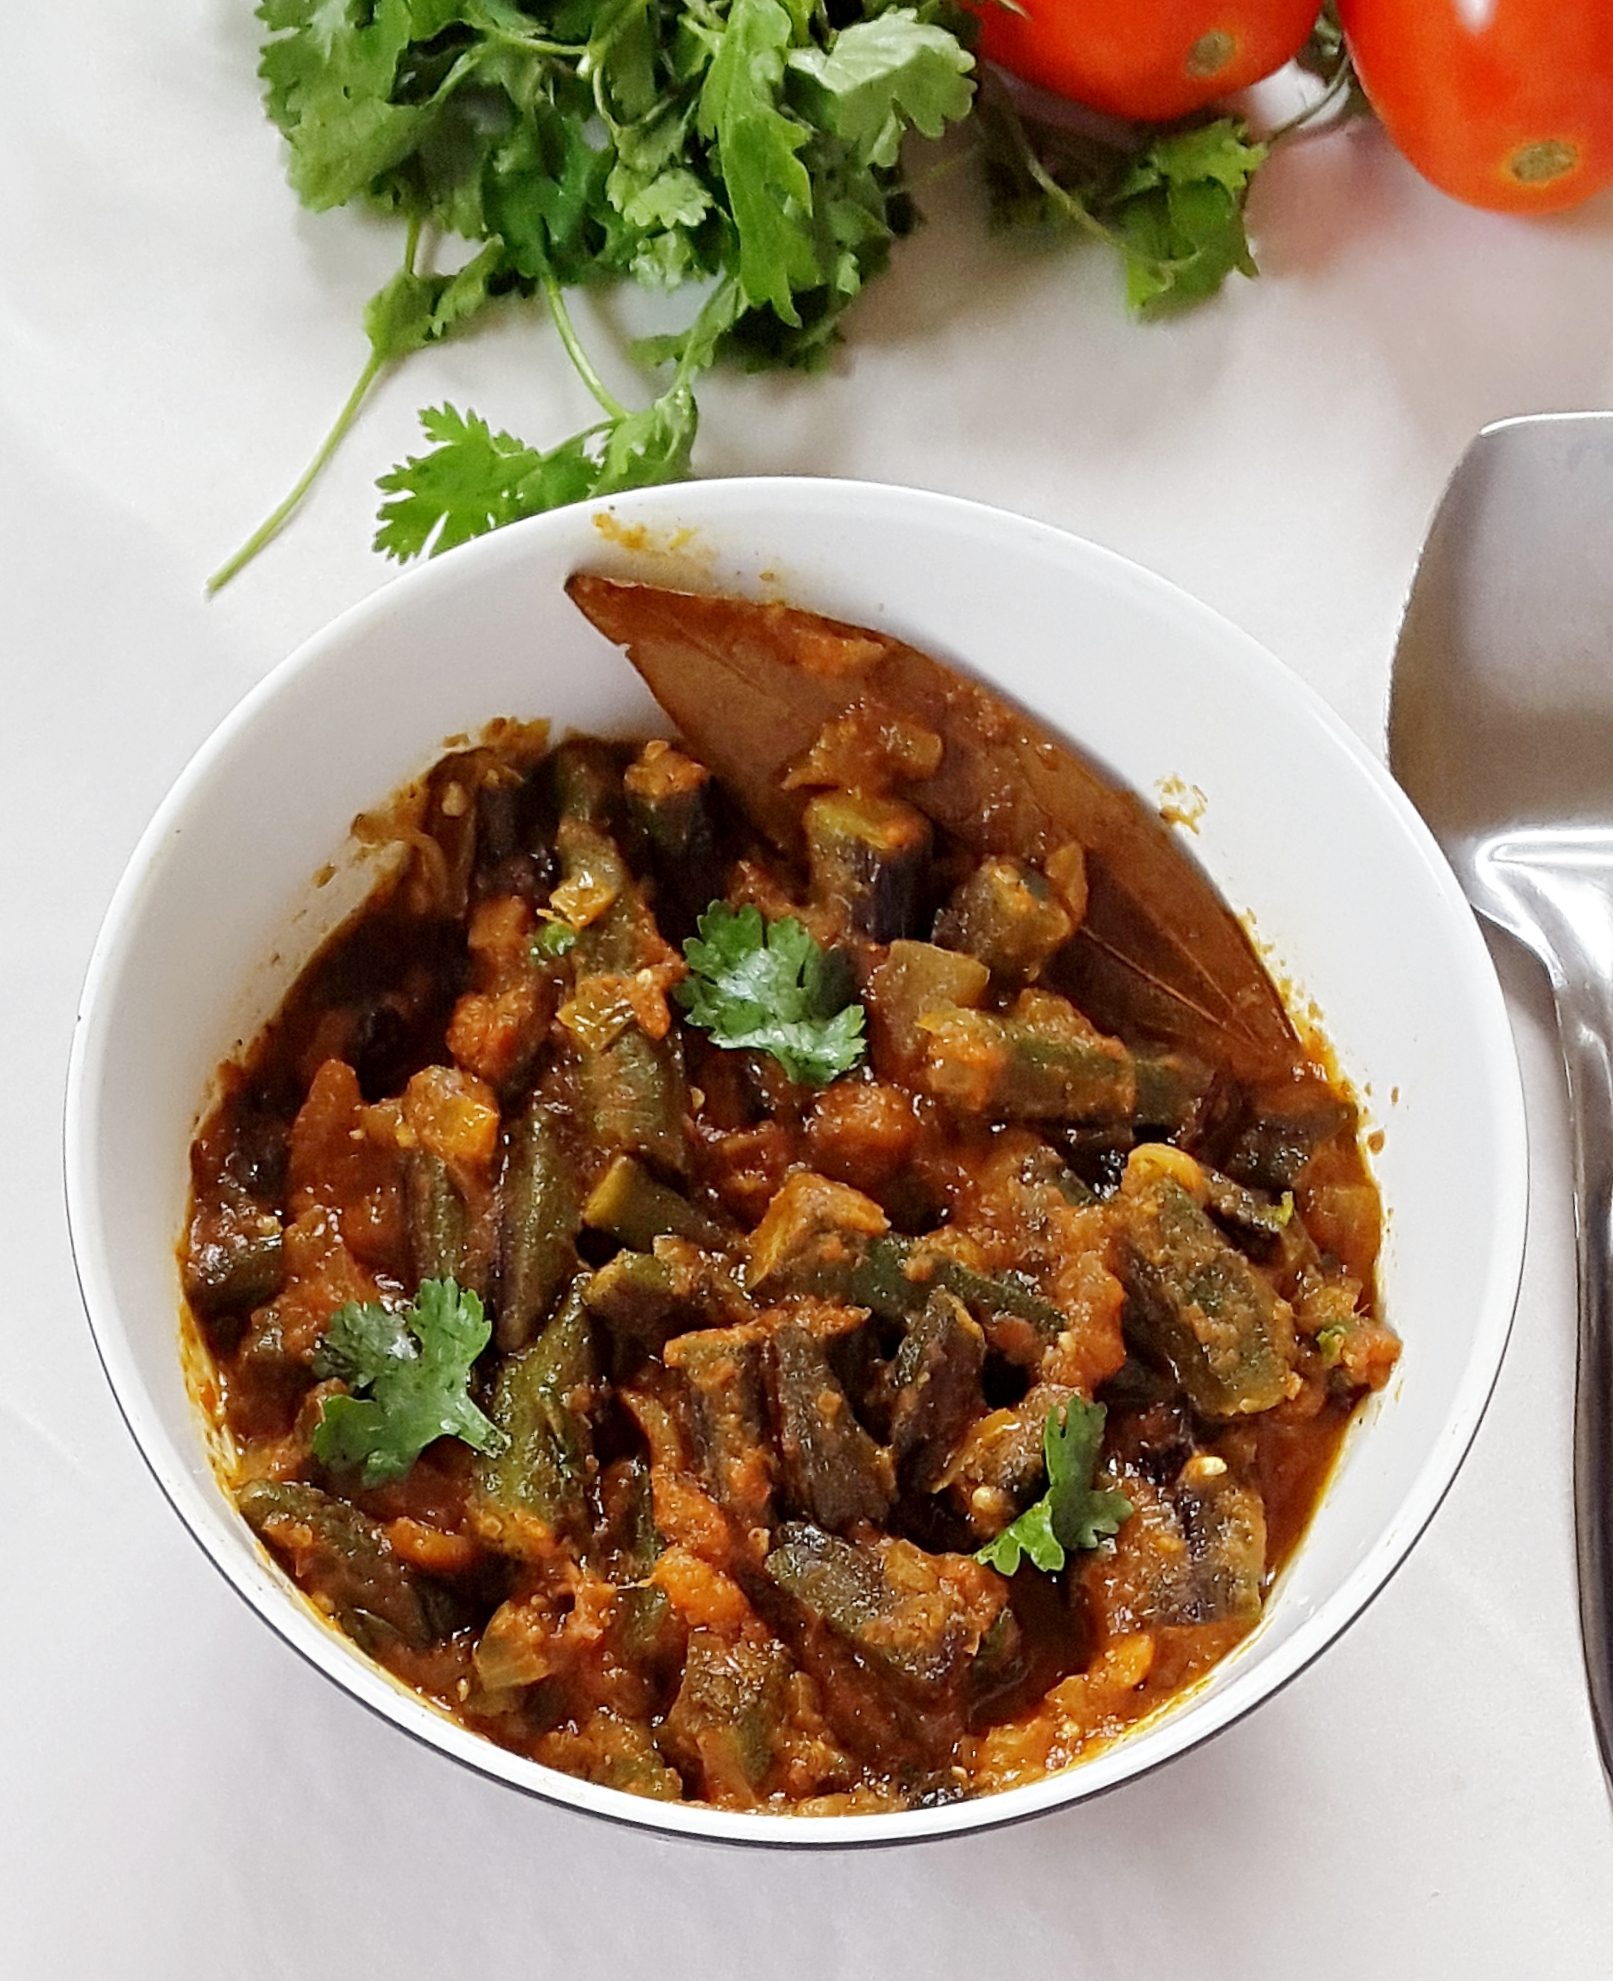 Bhindi masala gravy – Fried okra in a spicy tomato sauce